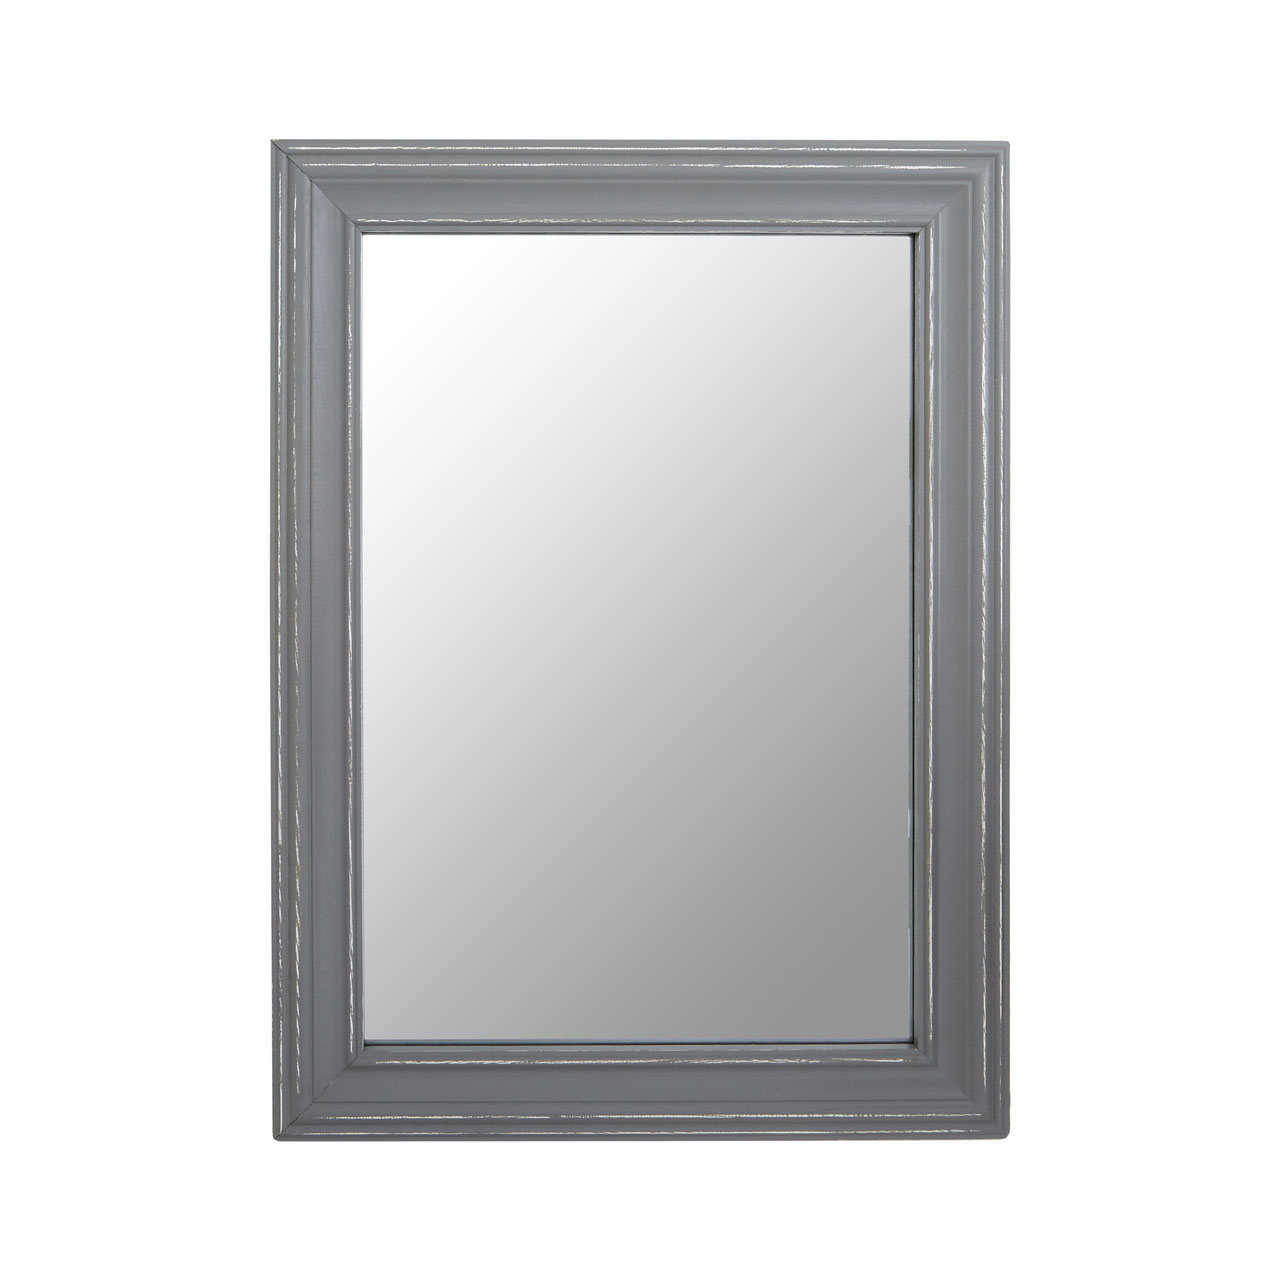 Framed Wall Mirrors In Newest Regatta Grey Wooden Framed Wall Mirror (View 8 of 20)